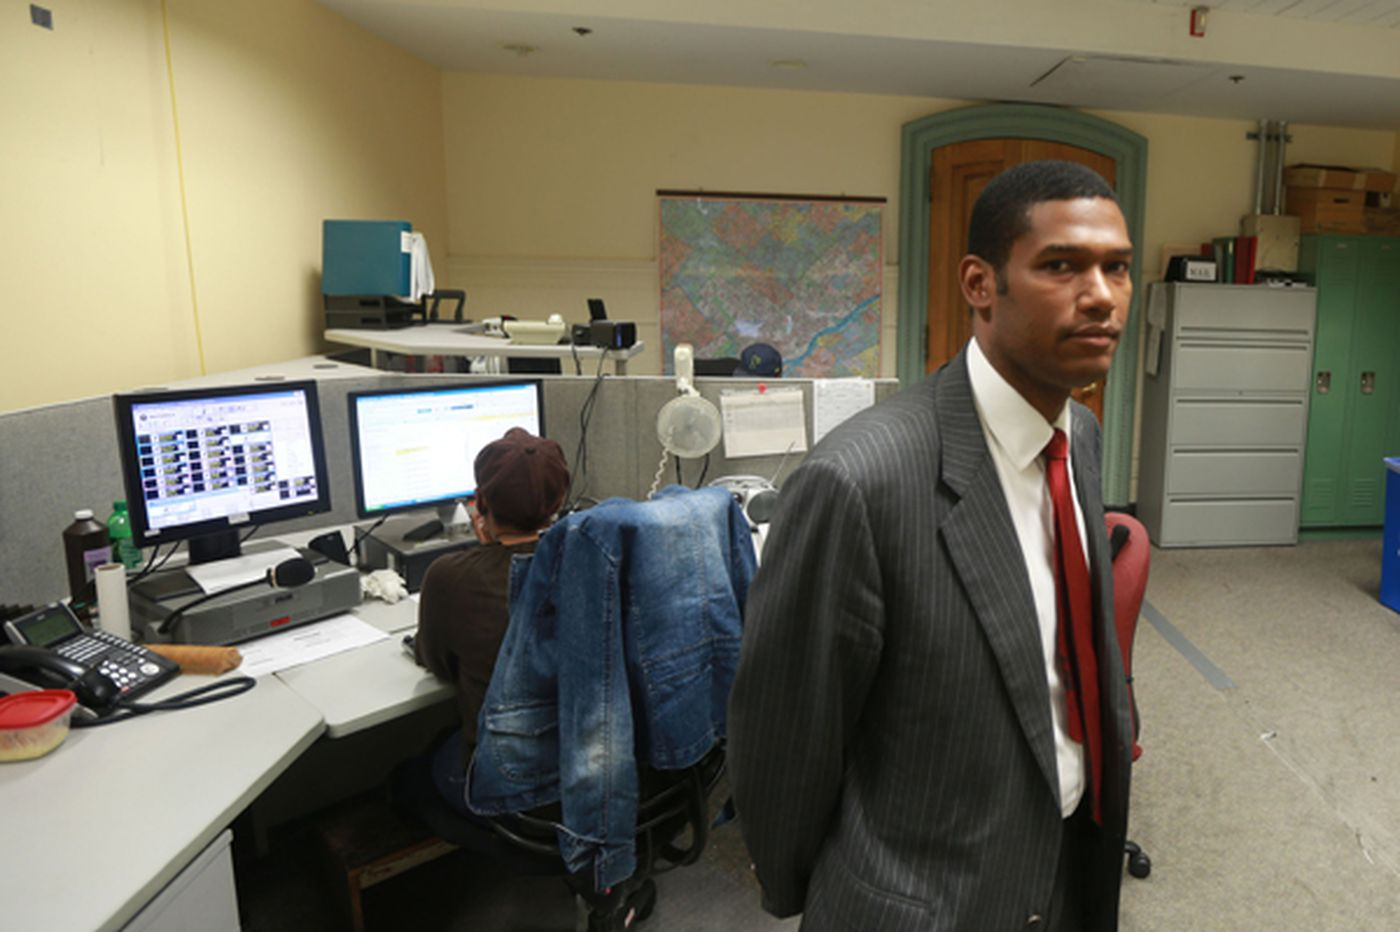 Ragged carpet, ringing phones: The life unglamorous in City Hall's 'secret VIP call center'